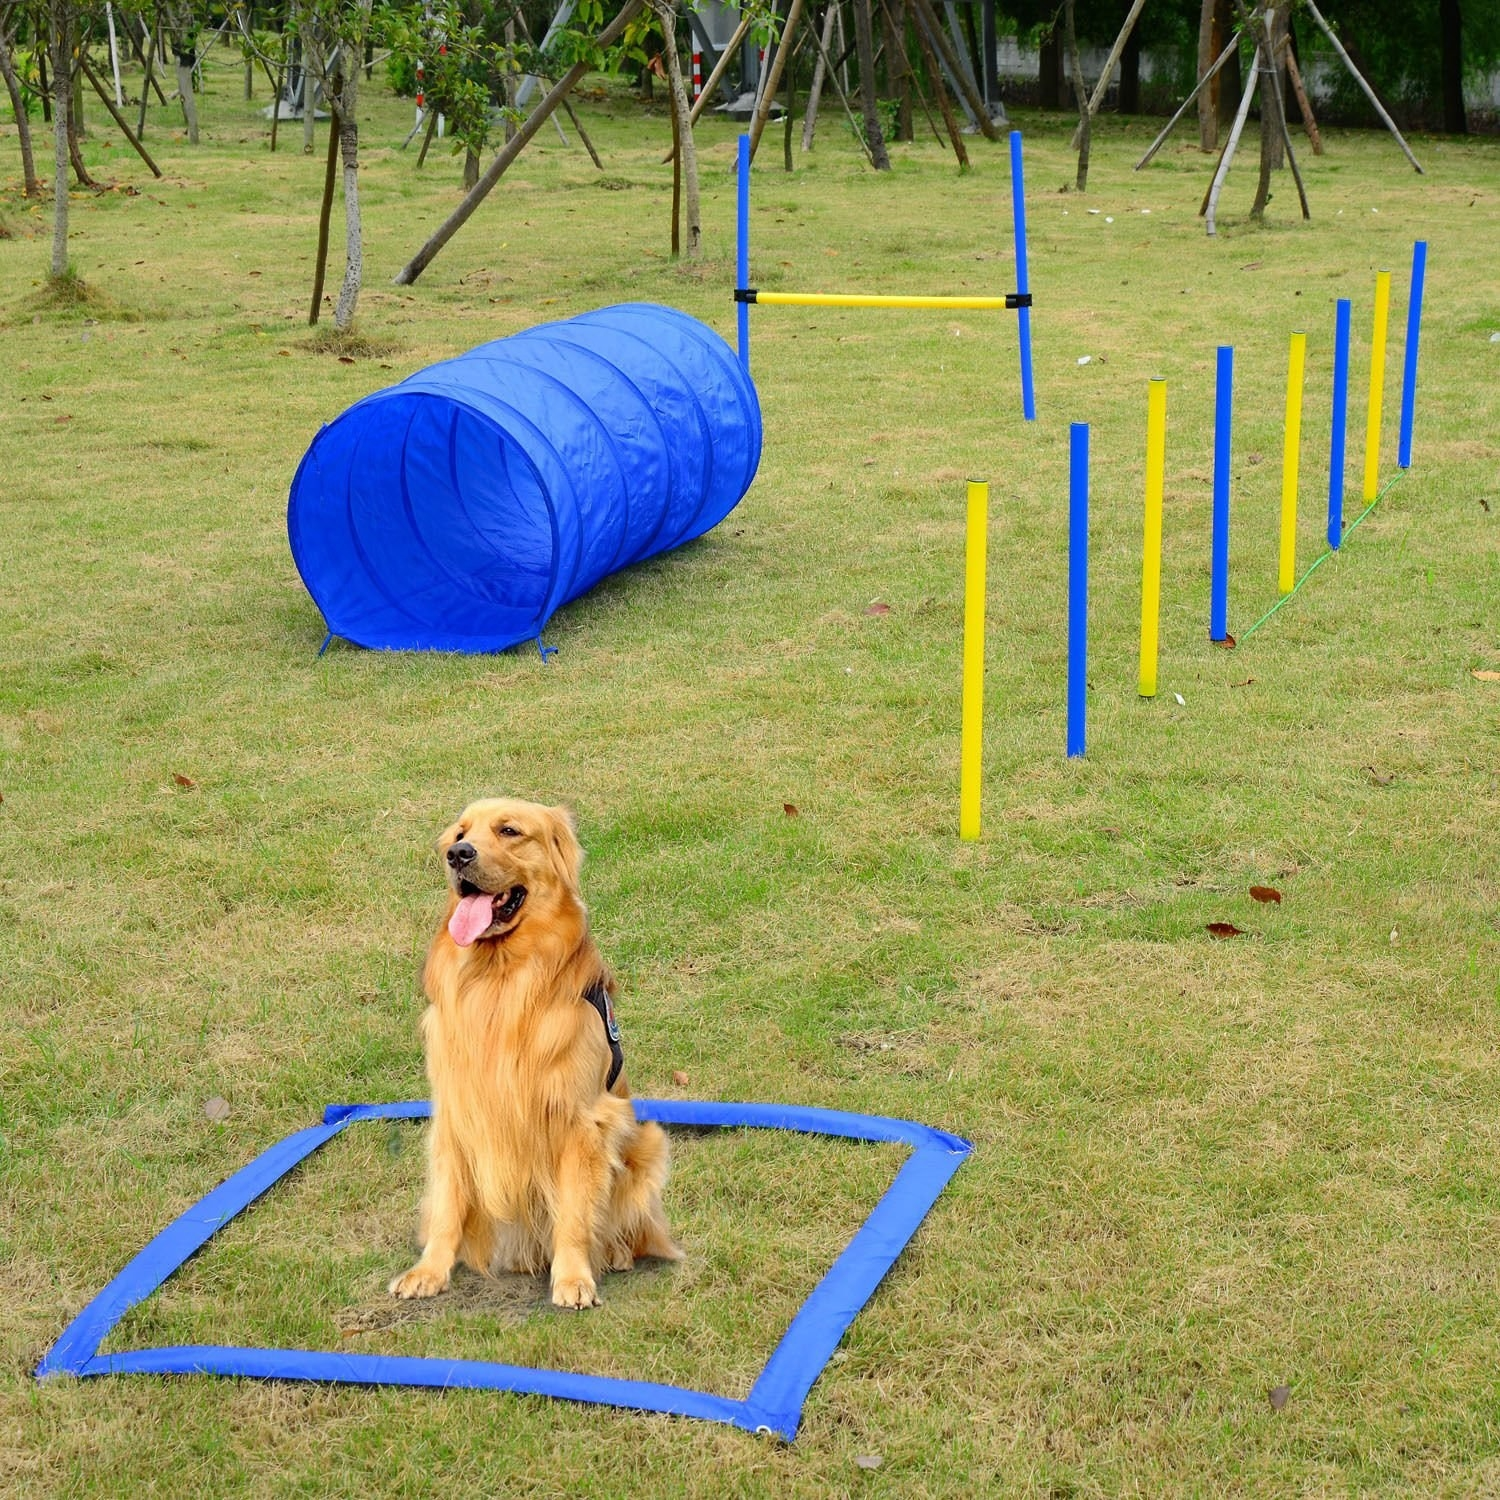 Dog on agility square start spot with a collapsable tunnel, jump, and agility poles set up in yard